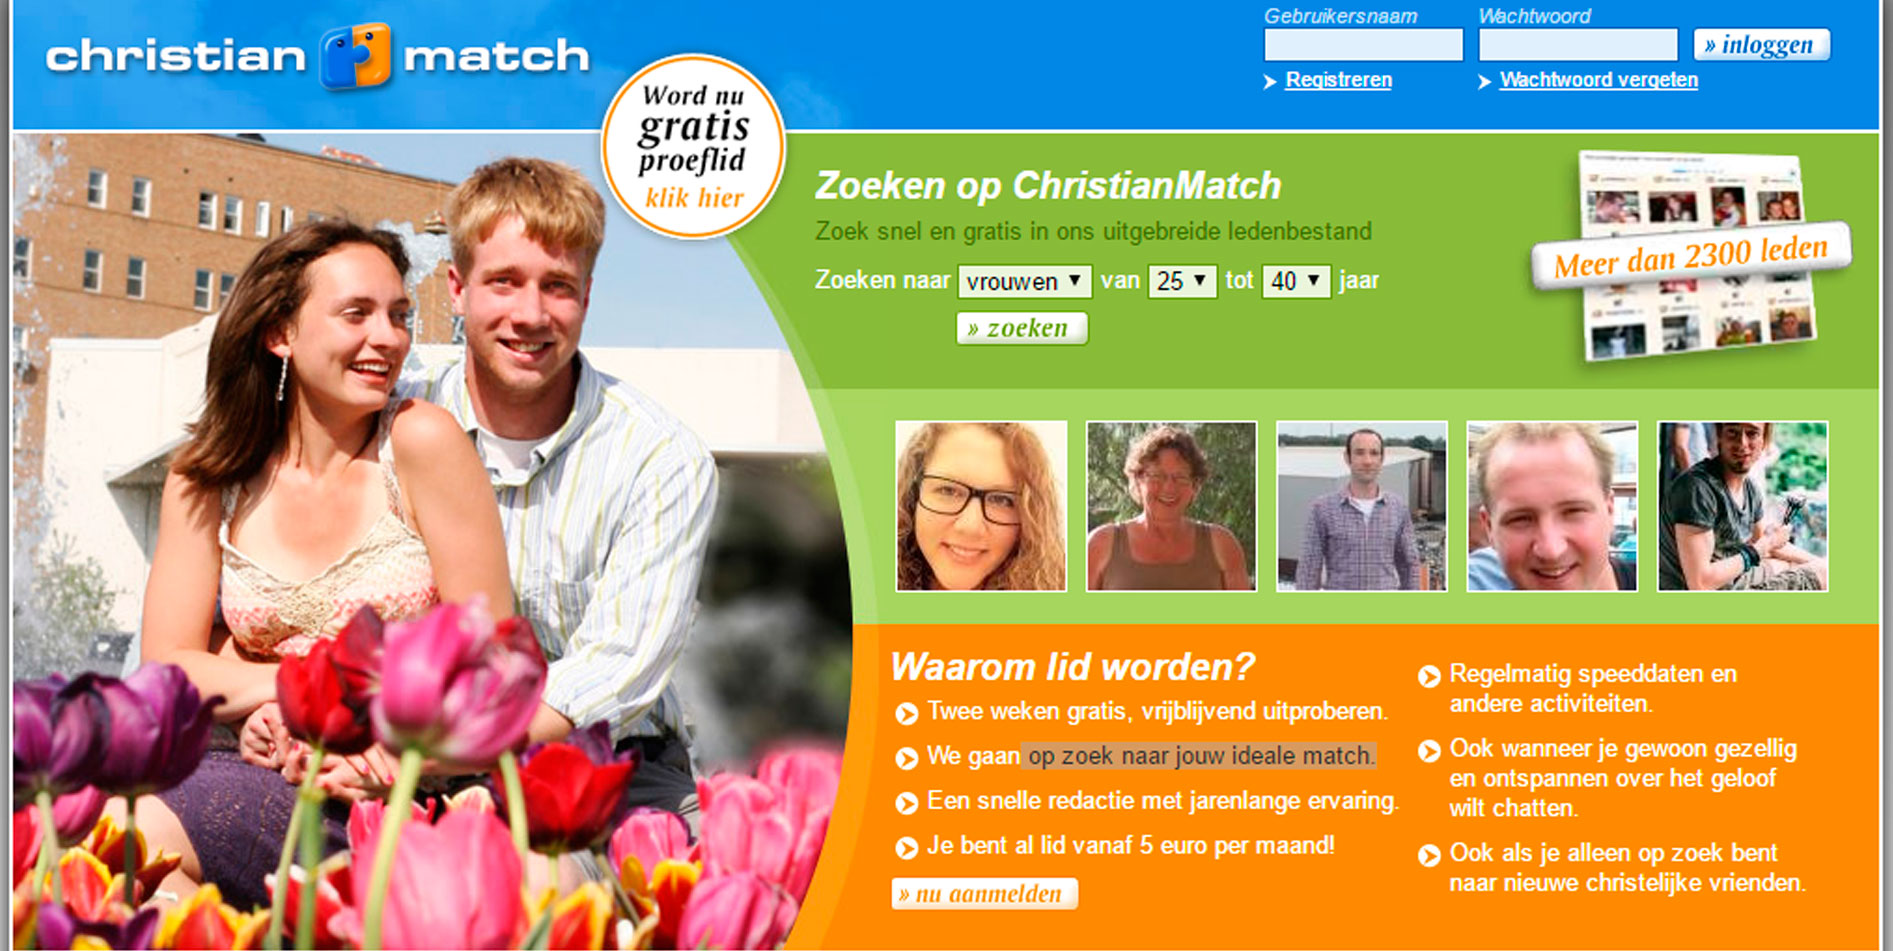 de smet christian women dating site Meet de smet singles online & chat in the forums dhu is a 100% free dating site to find personals & casual encounters in de smet.